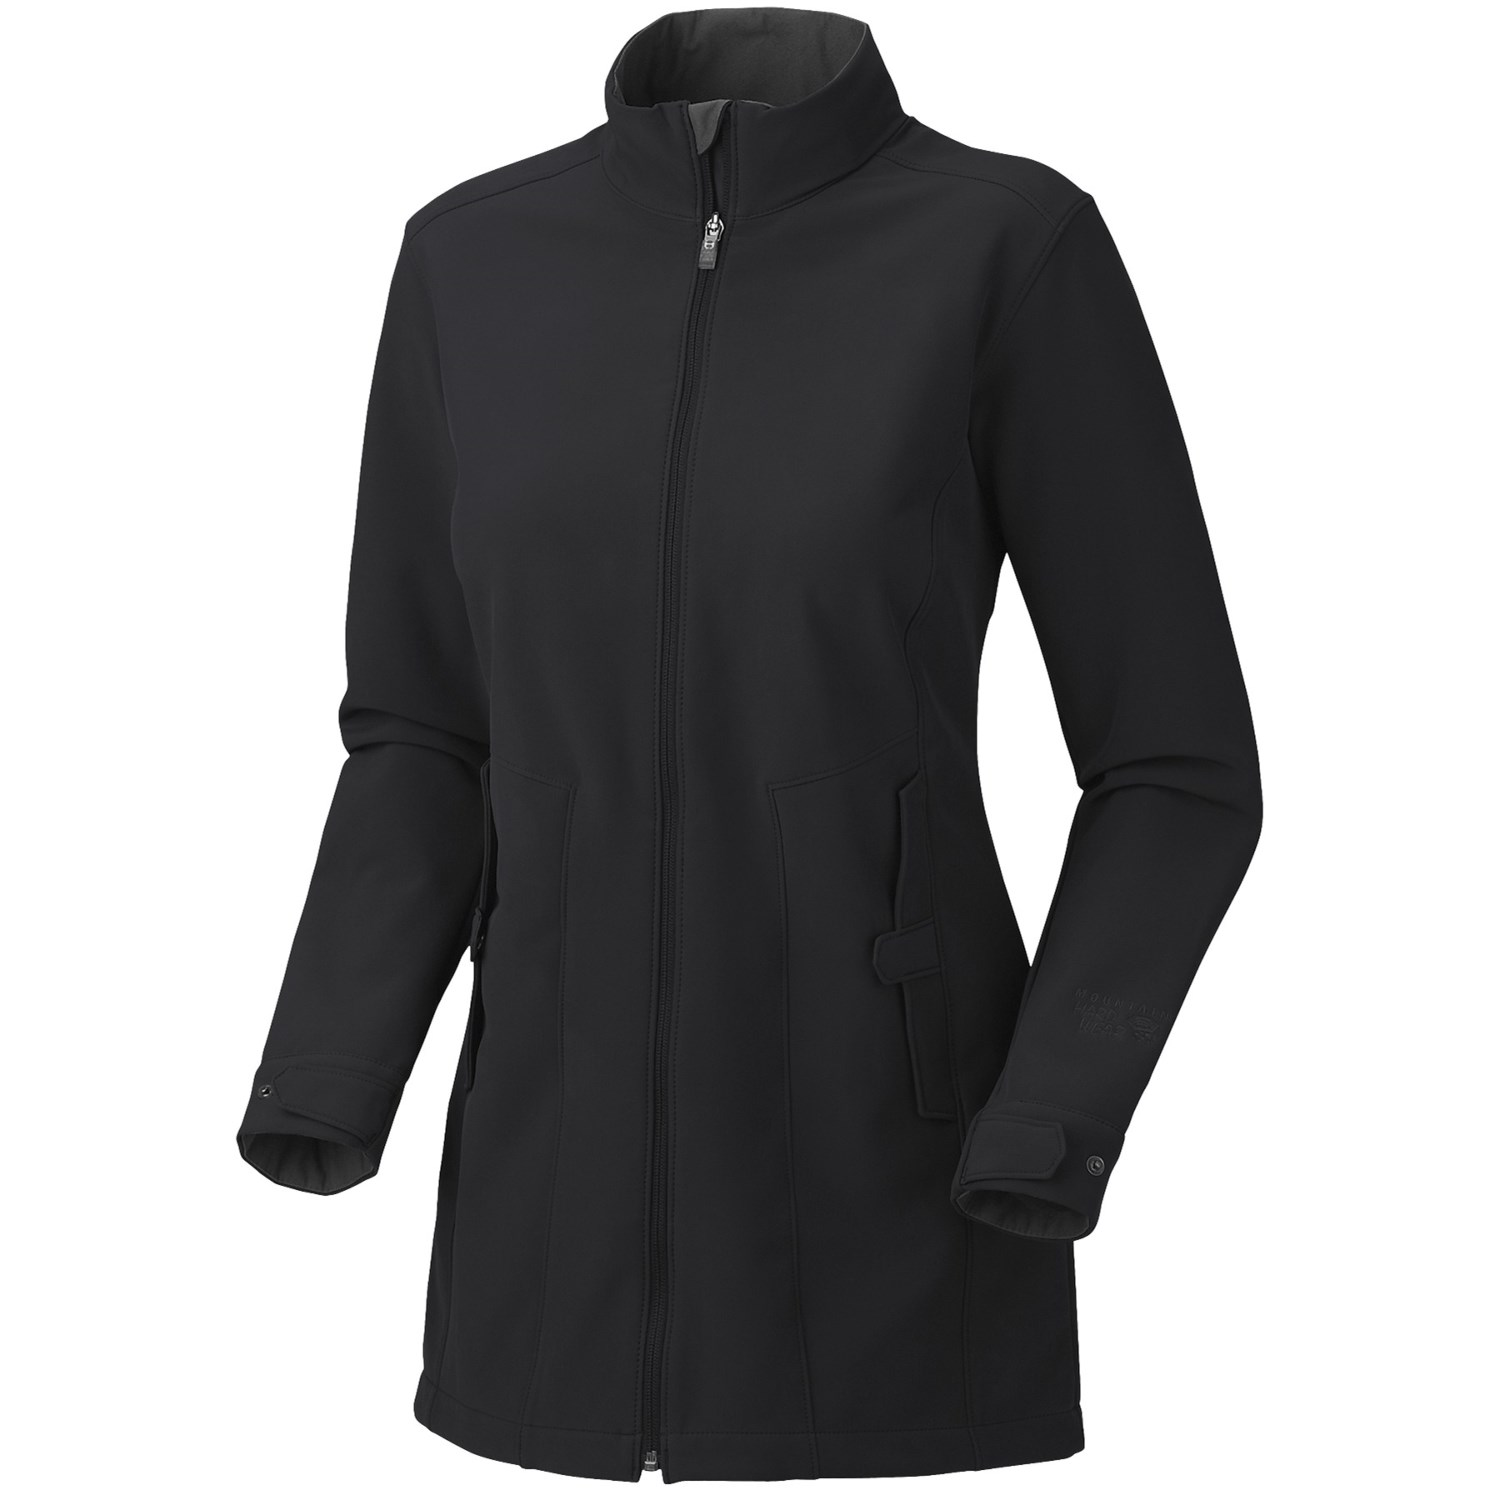 Mountain hardwear celerina soft shell coat for women in black